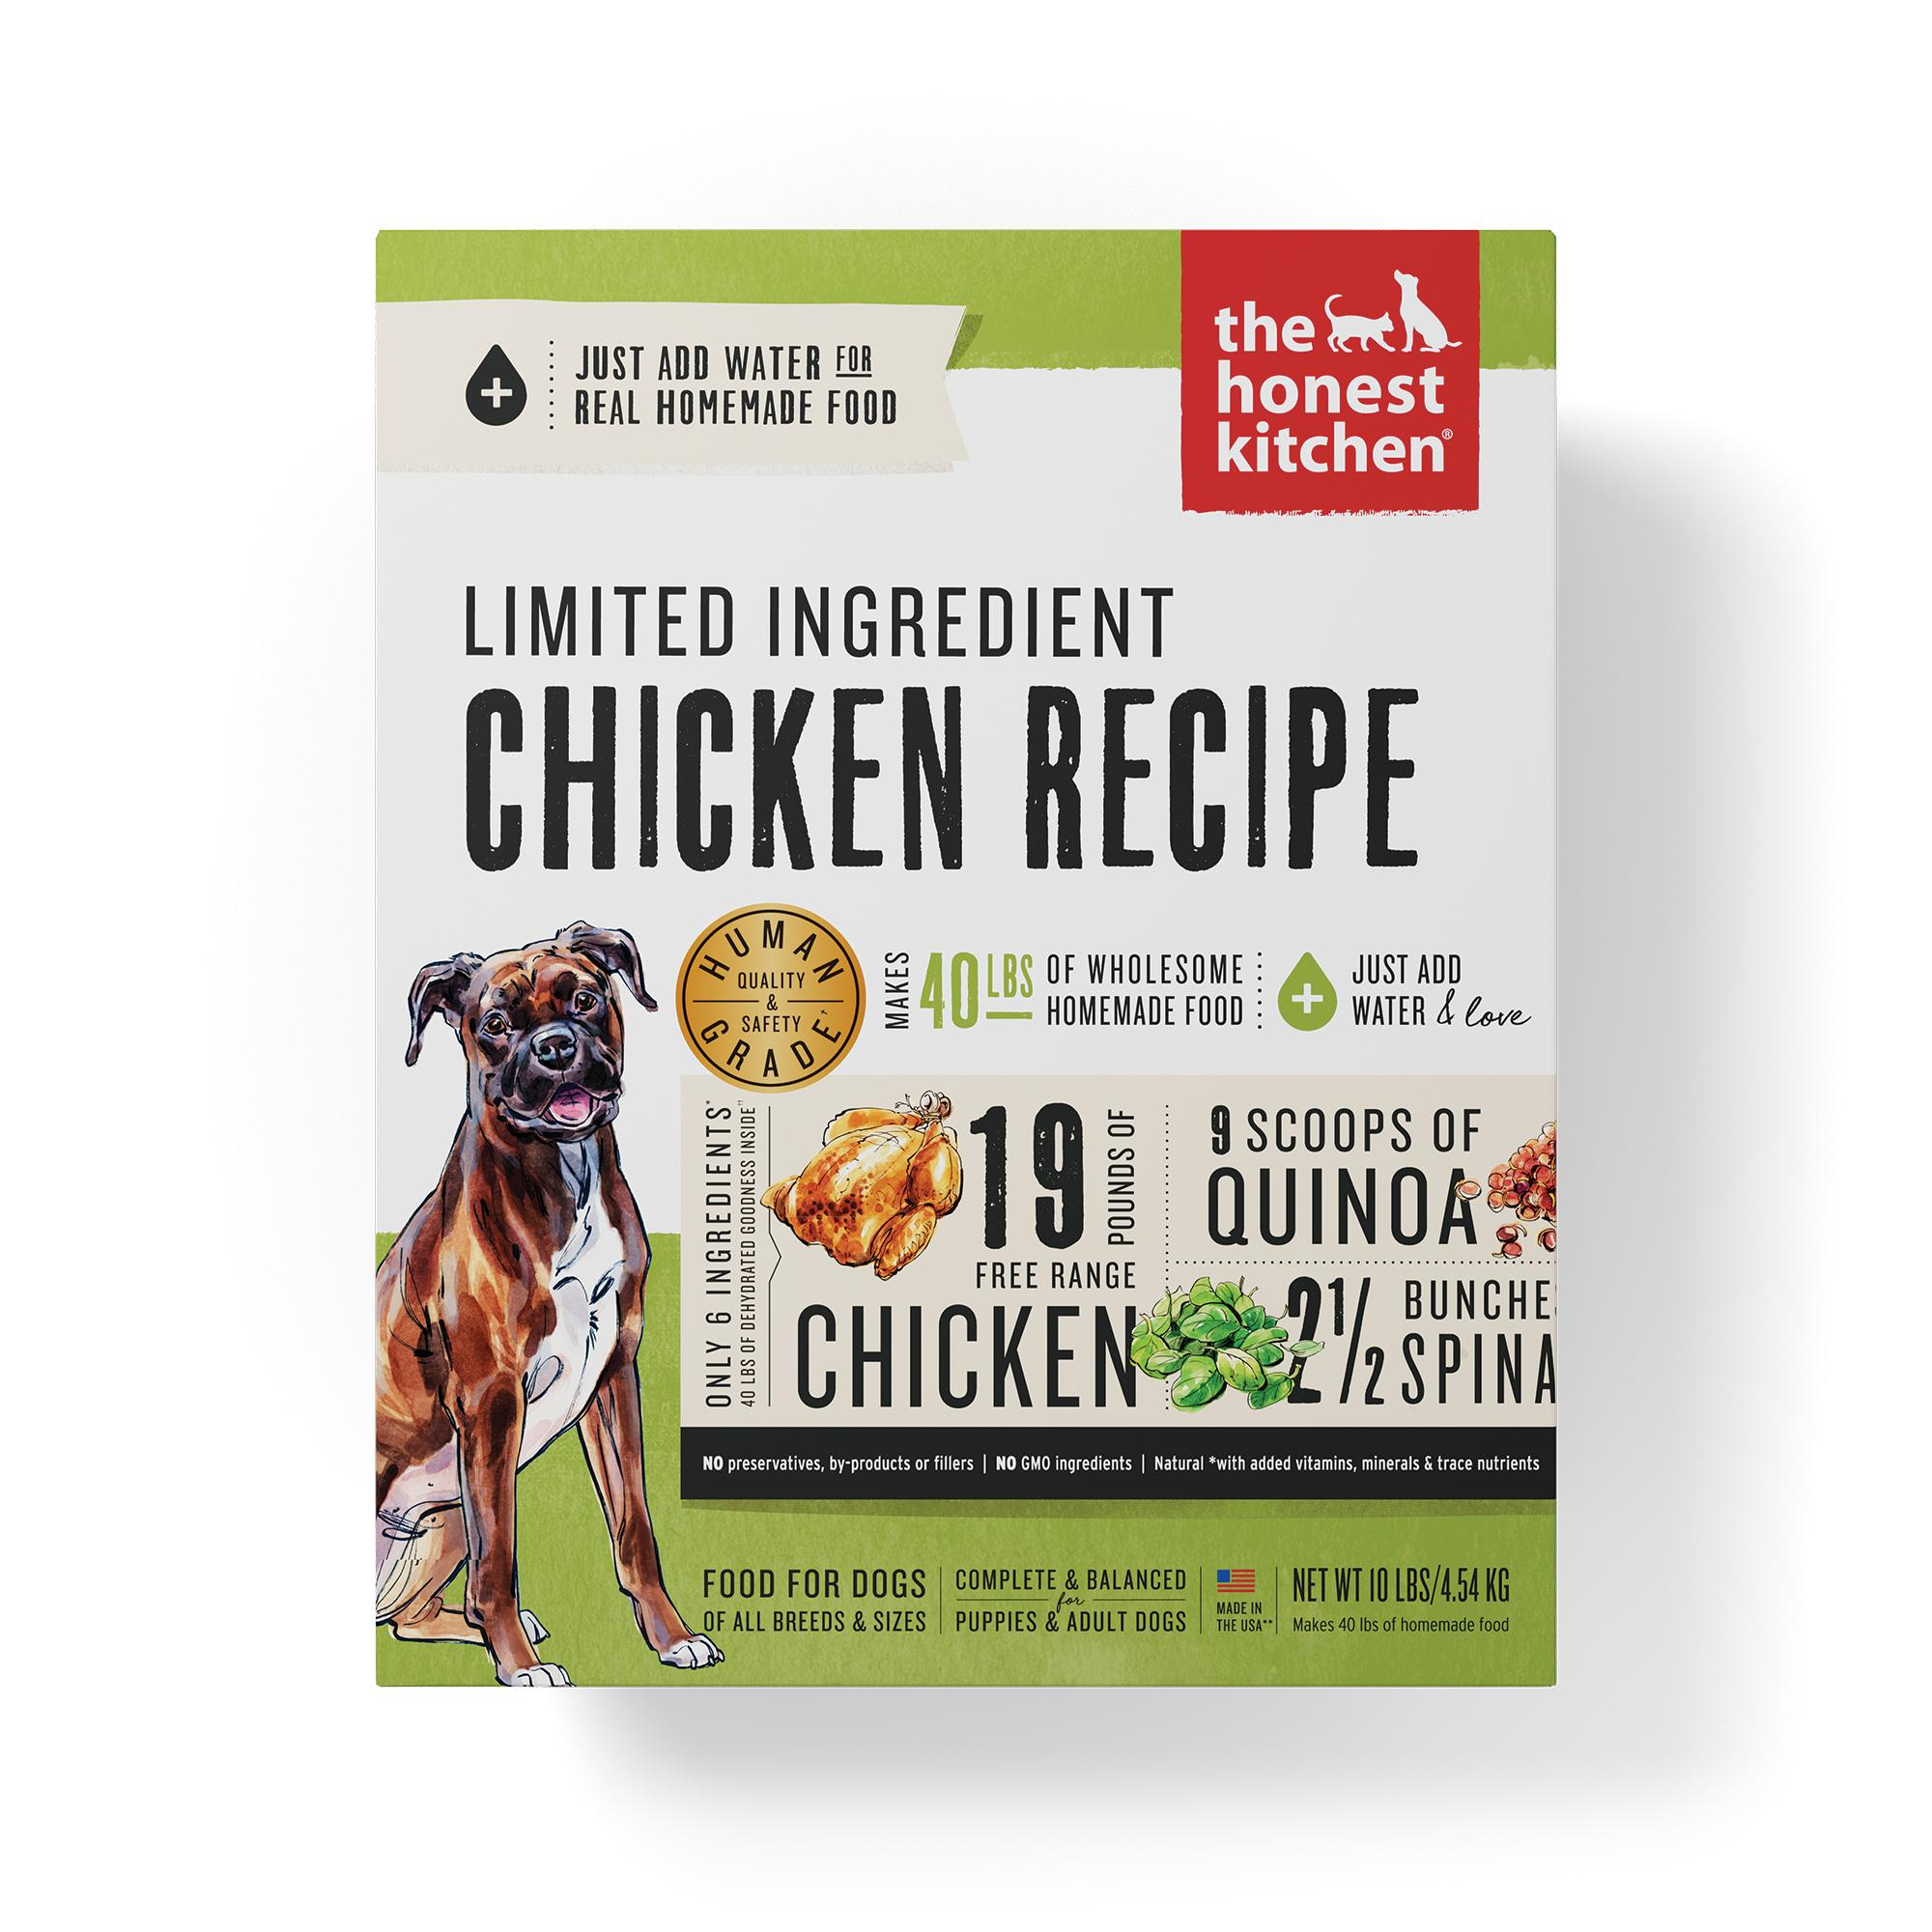 The Honest Kitchen Limited Ingredient Chicken Recipe Dehydrated Dog Food, 10-lb box